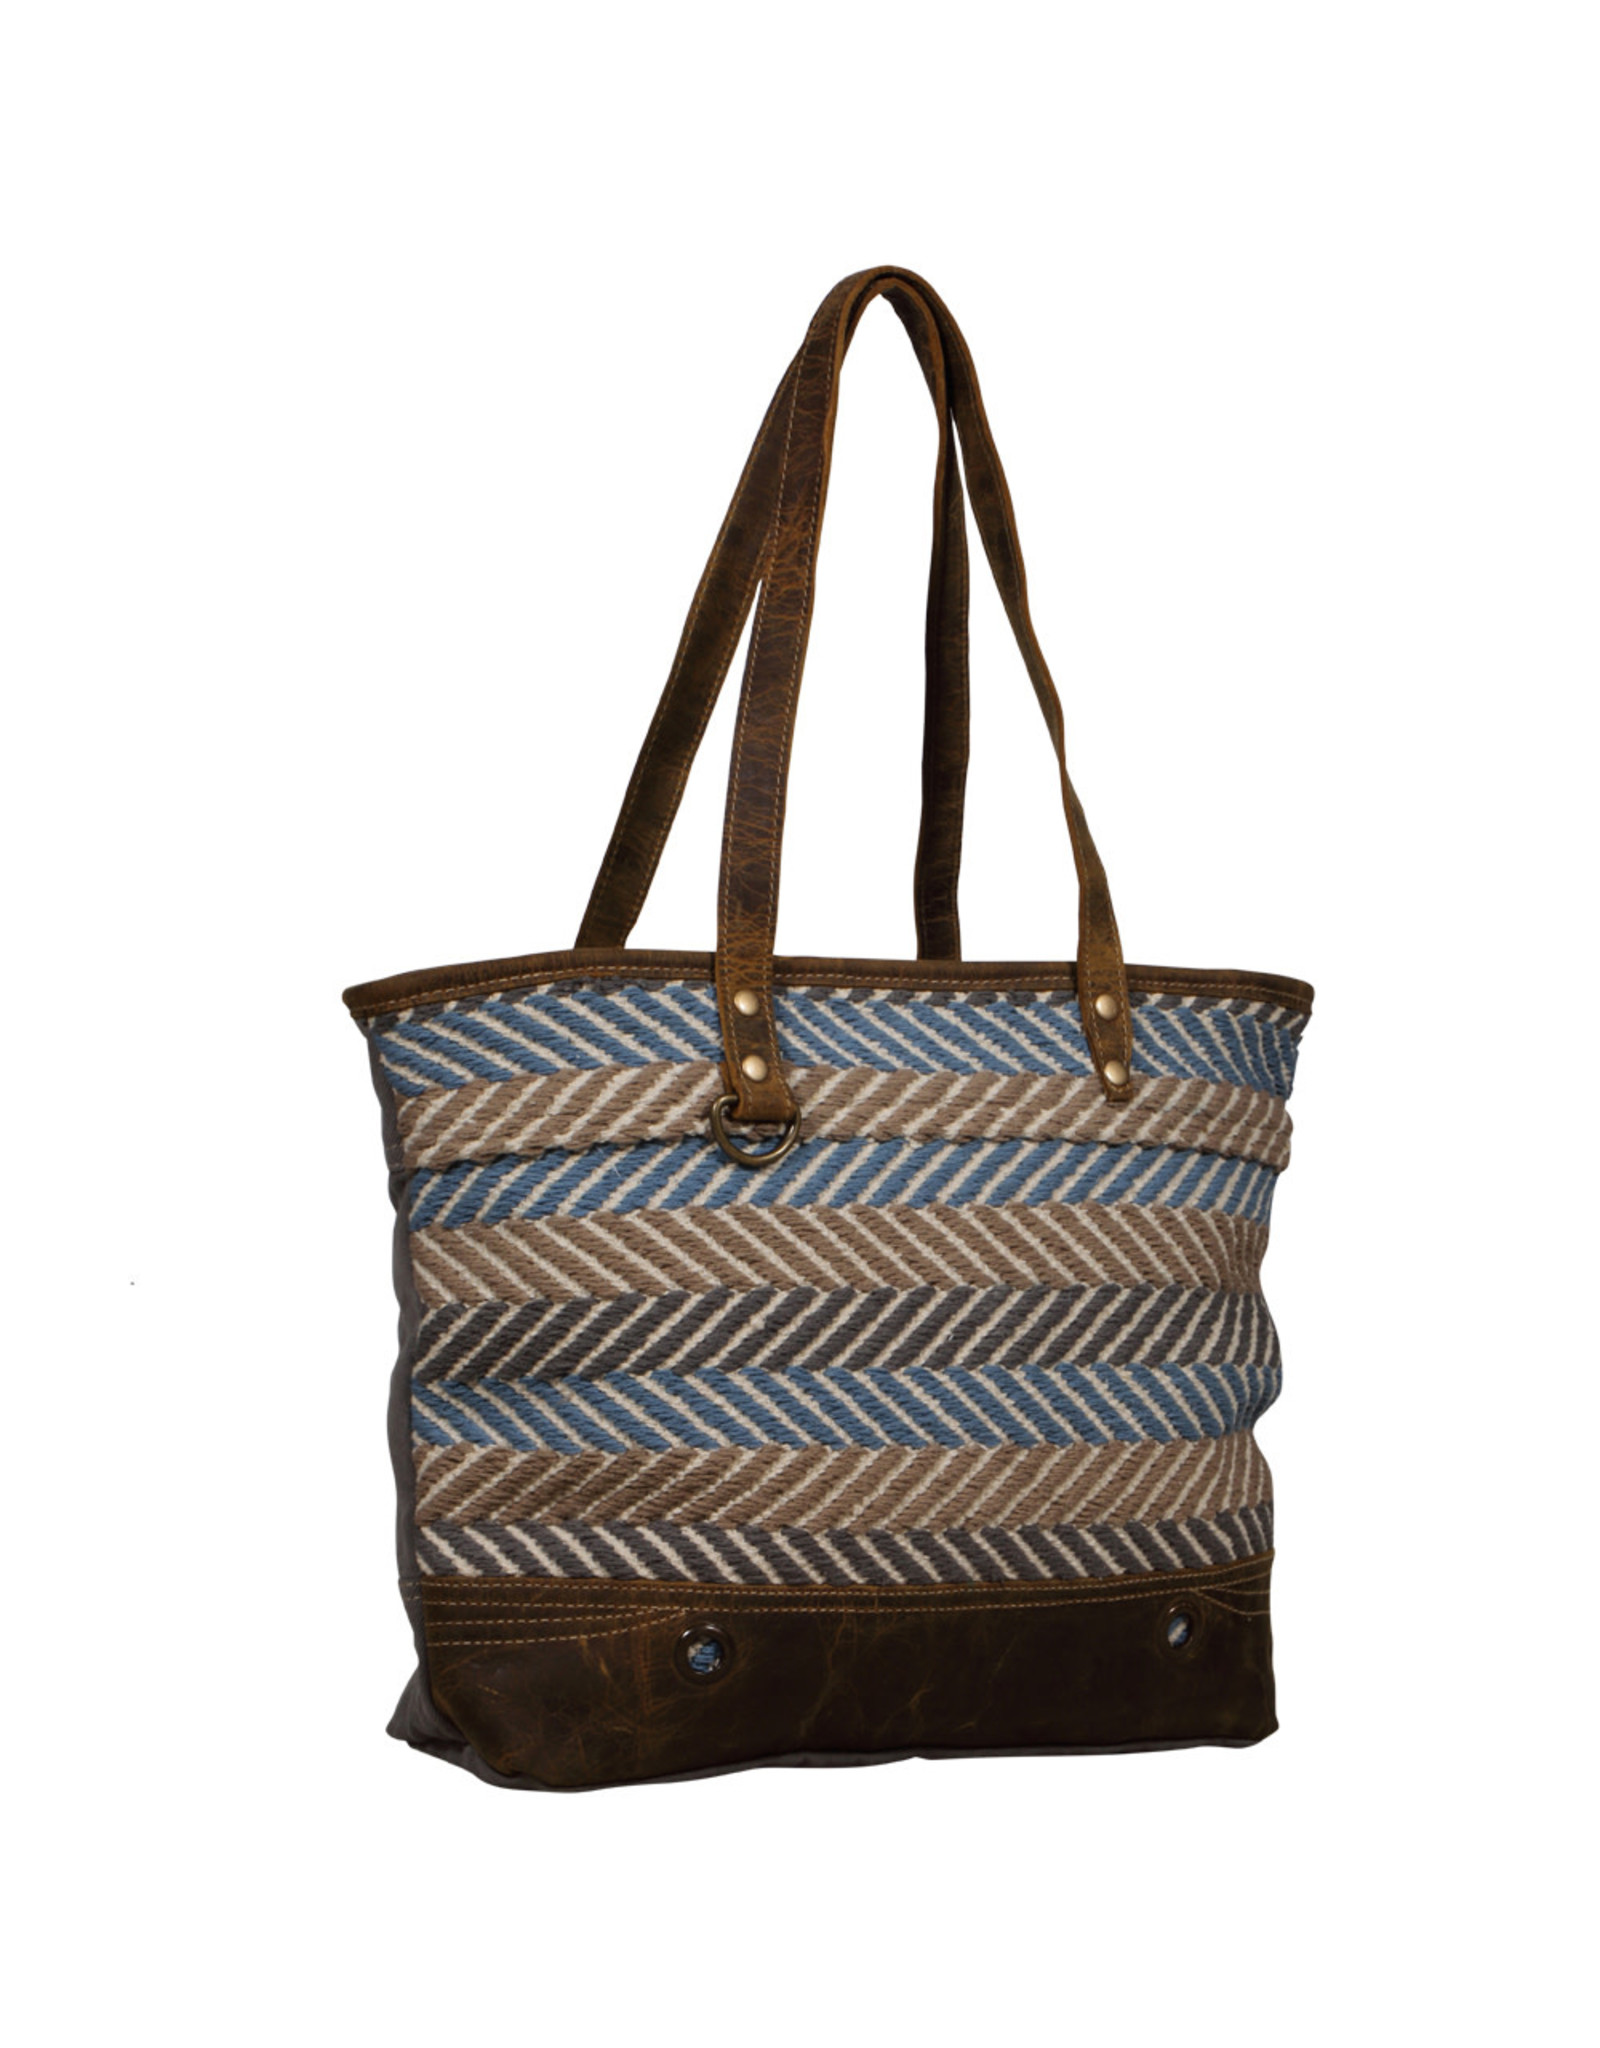 S 2109 Extravagant Tote Bag Flat 30% off on myra medicines offers for new user. myra bags s 2109 extravagant tote bag